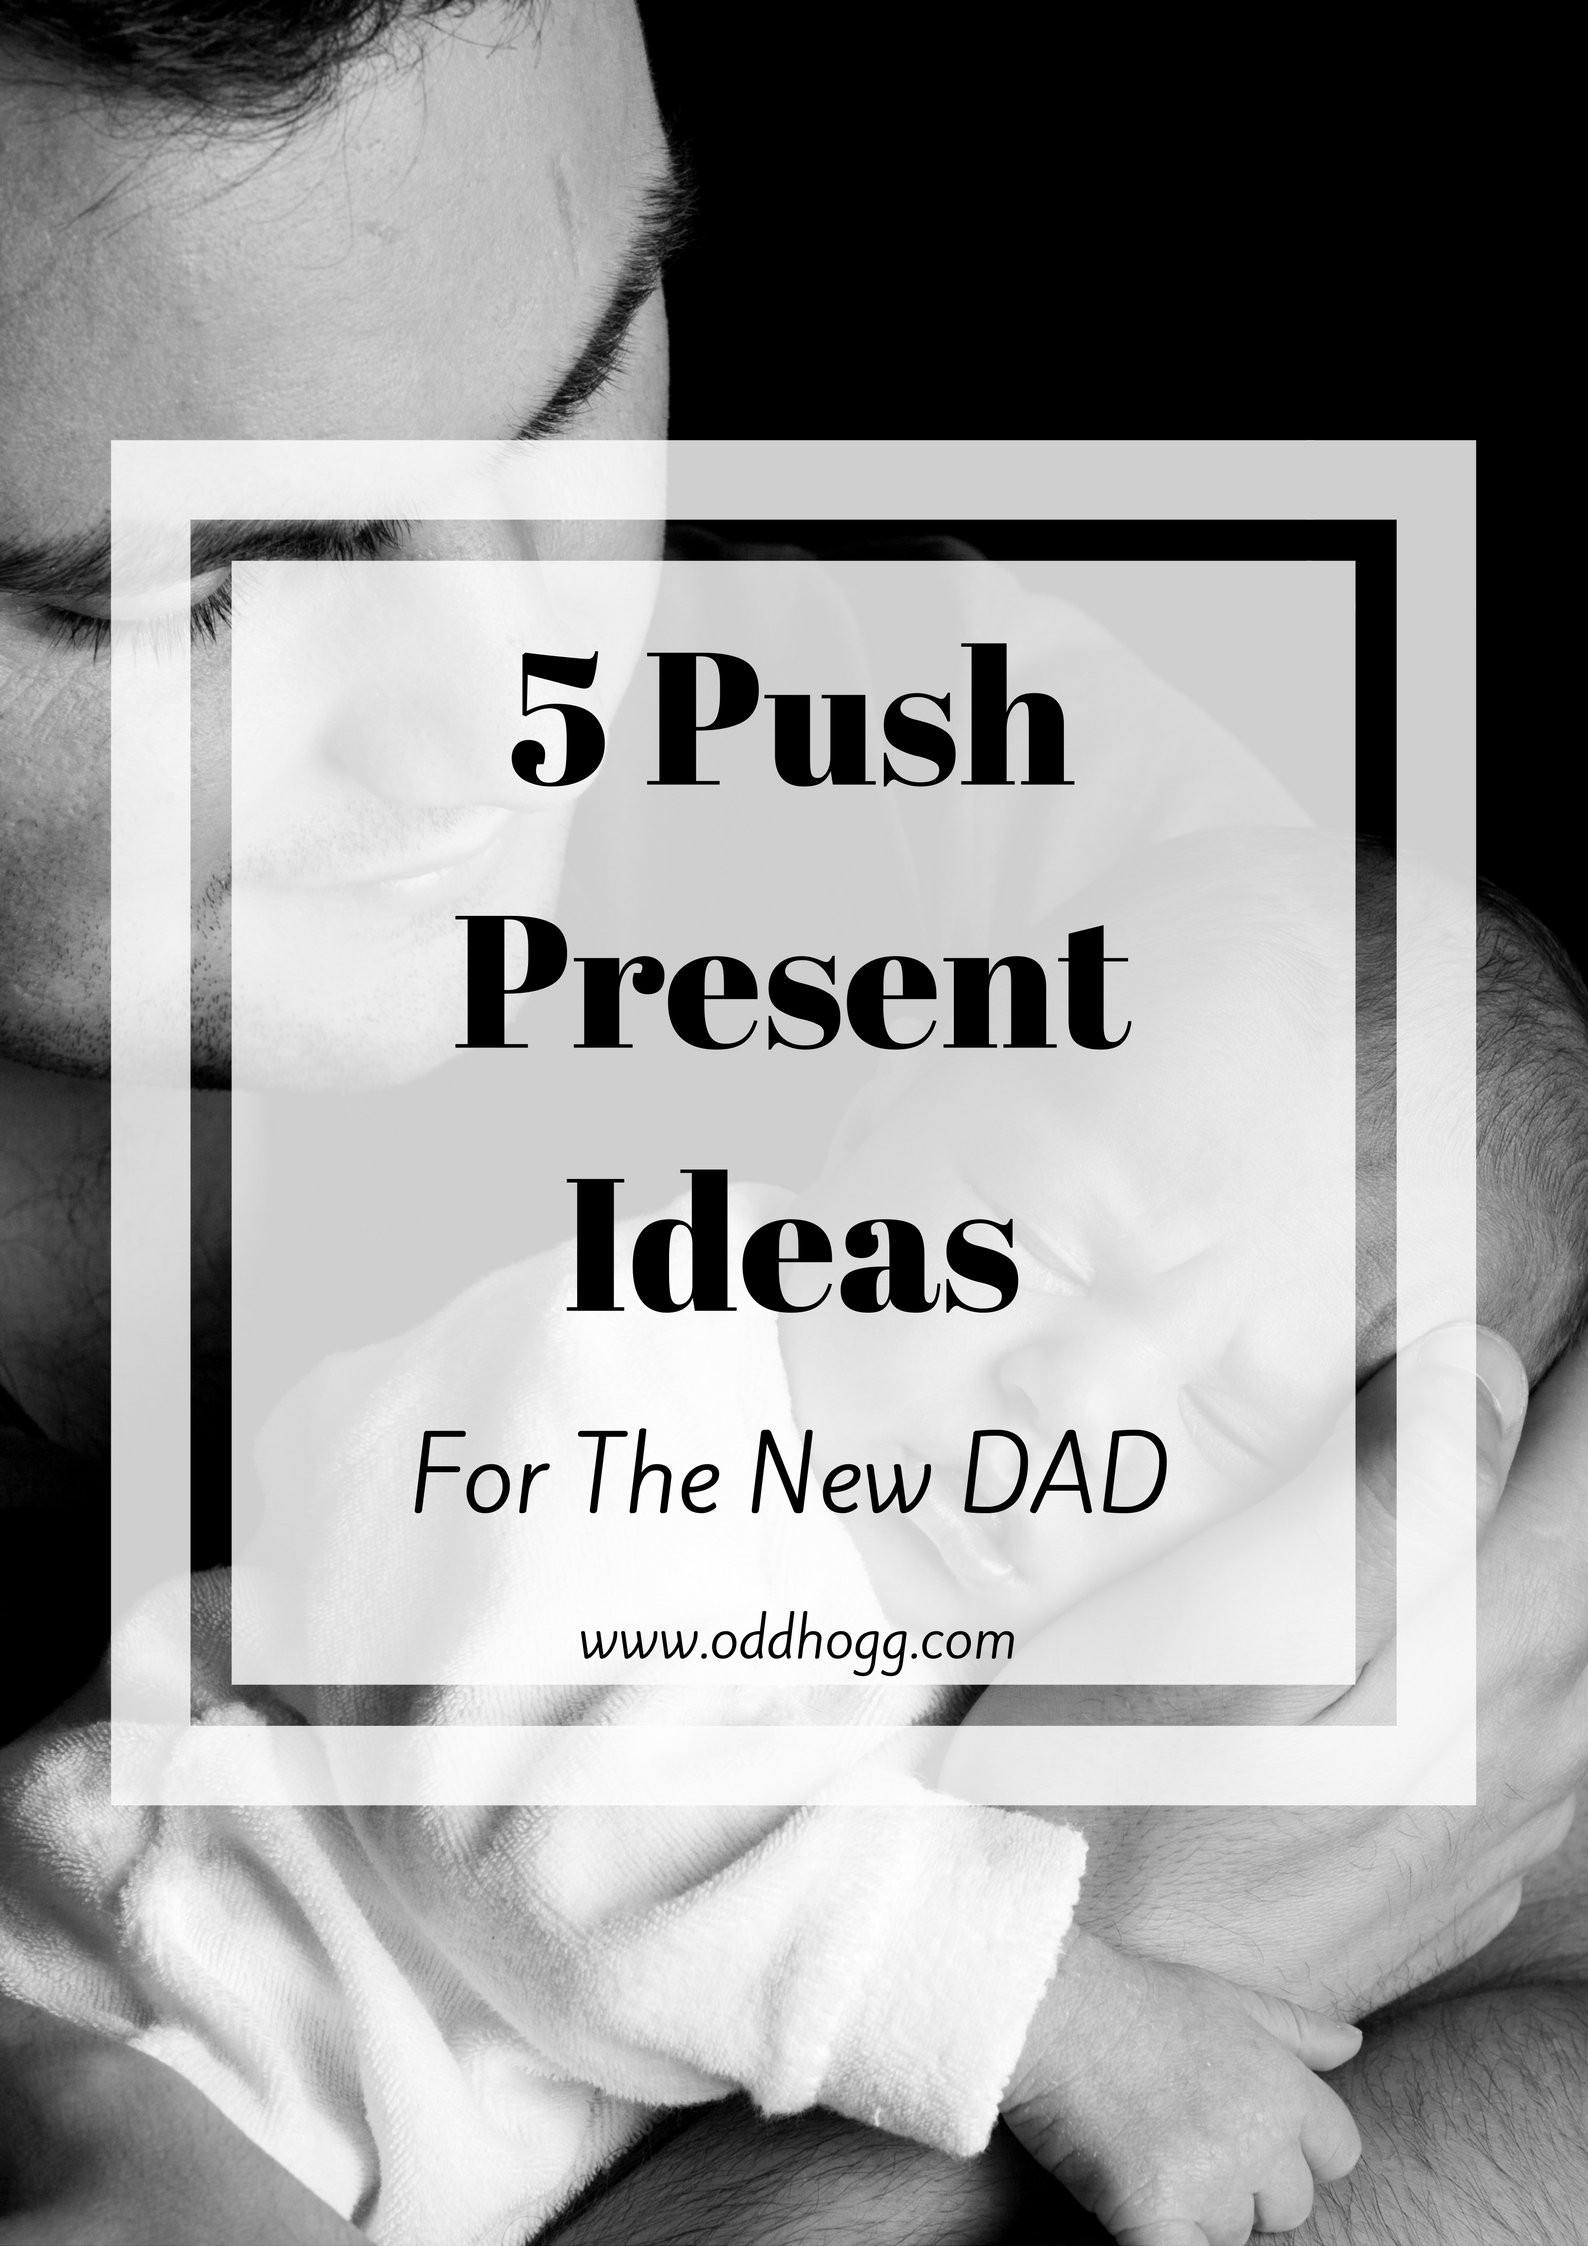 10 Awesome Push Gift Ideas For Wife 5 push present ideas for the new dad oddhogg 1 2020